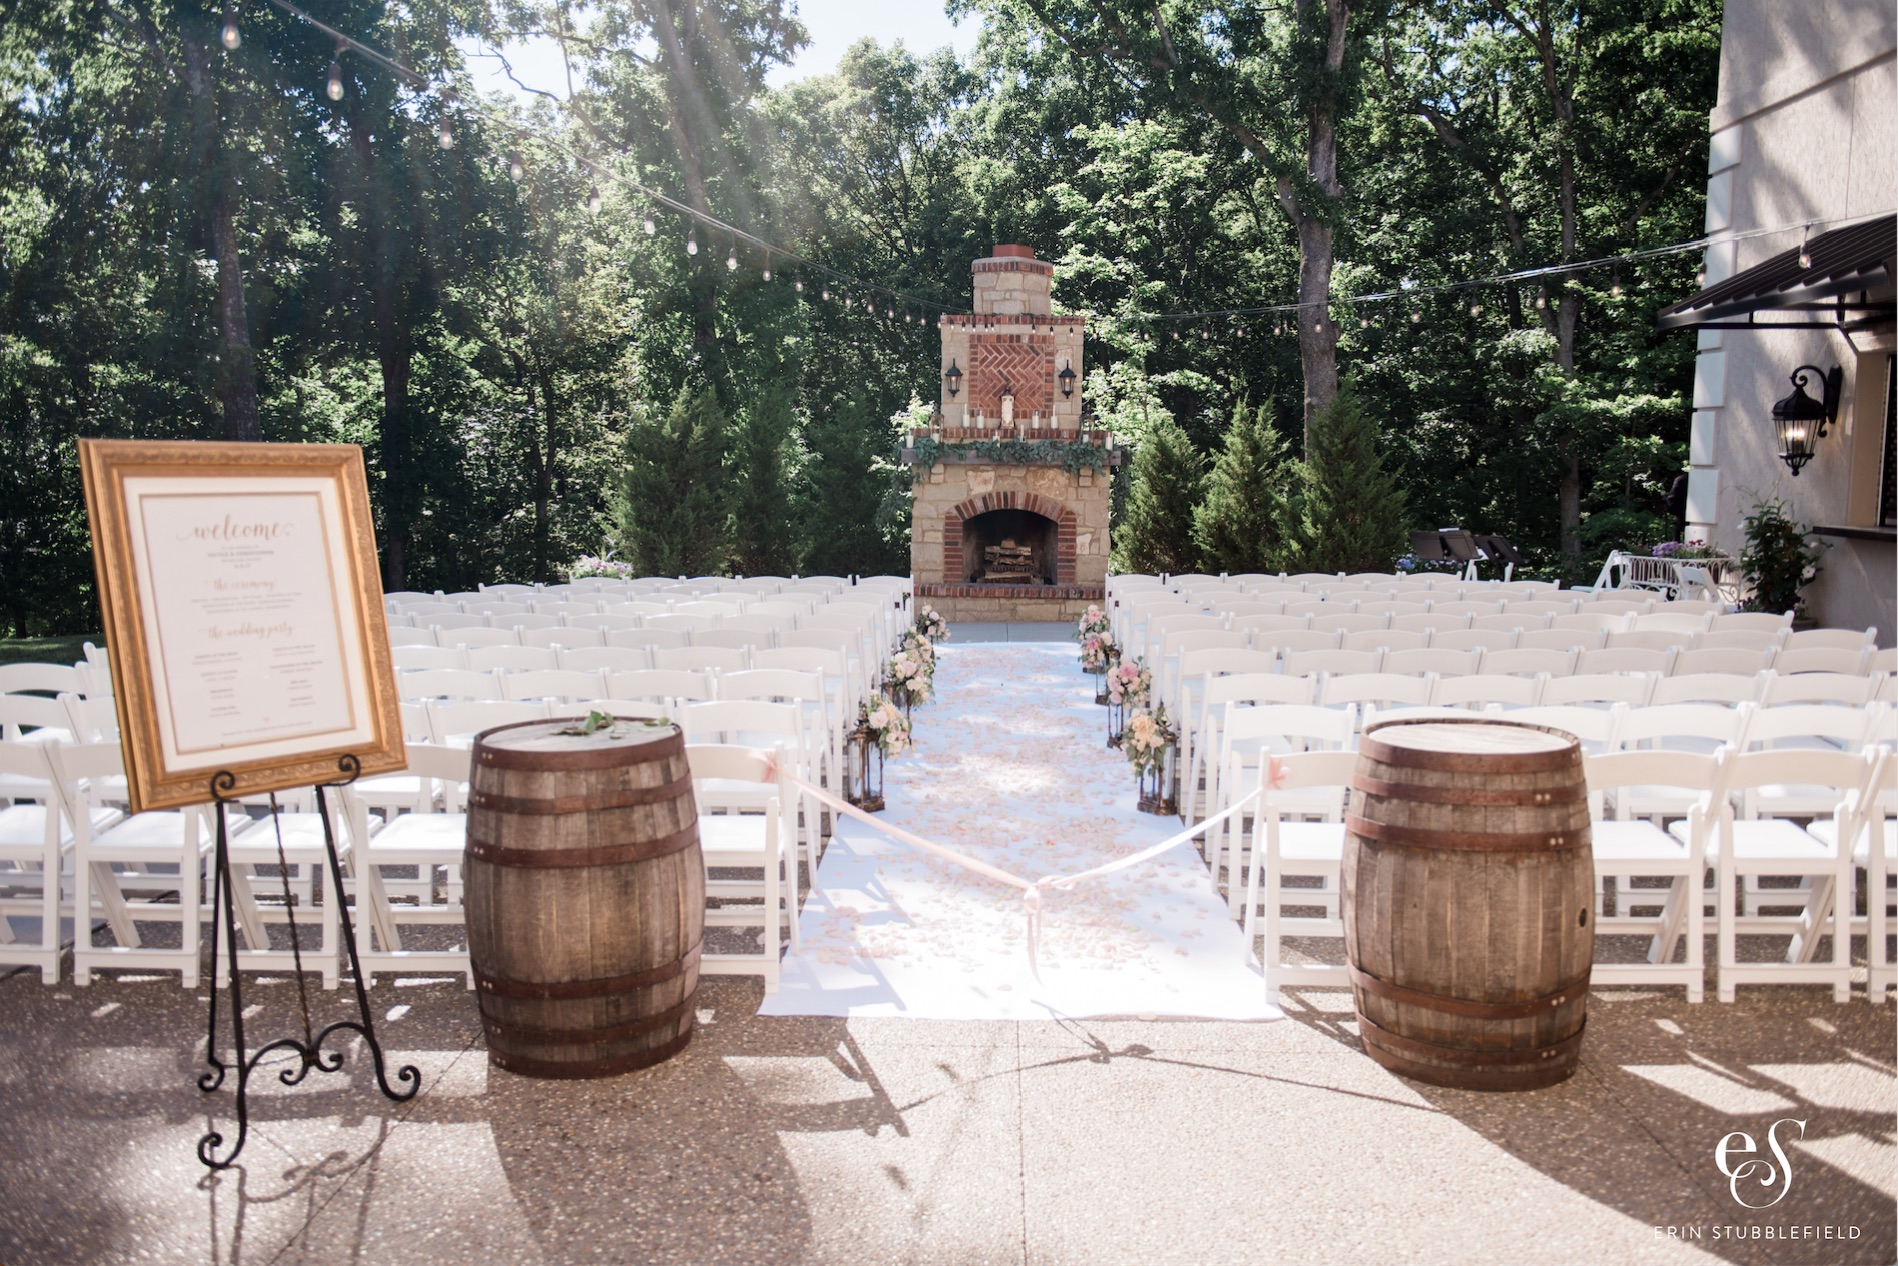 facing the fireplace - Our freestanding wood burning fireplace adds such a unique and romantic element to your ceremony. The bistro lights above welcome your guests to a setting which feels so intimate, yet can fit ALL of your guests! Approx. total chairs on patio: 230 with 10 rows